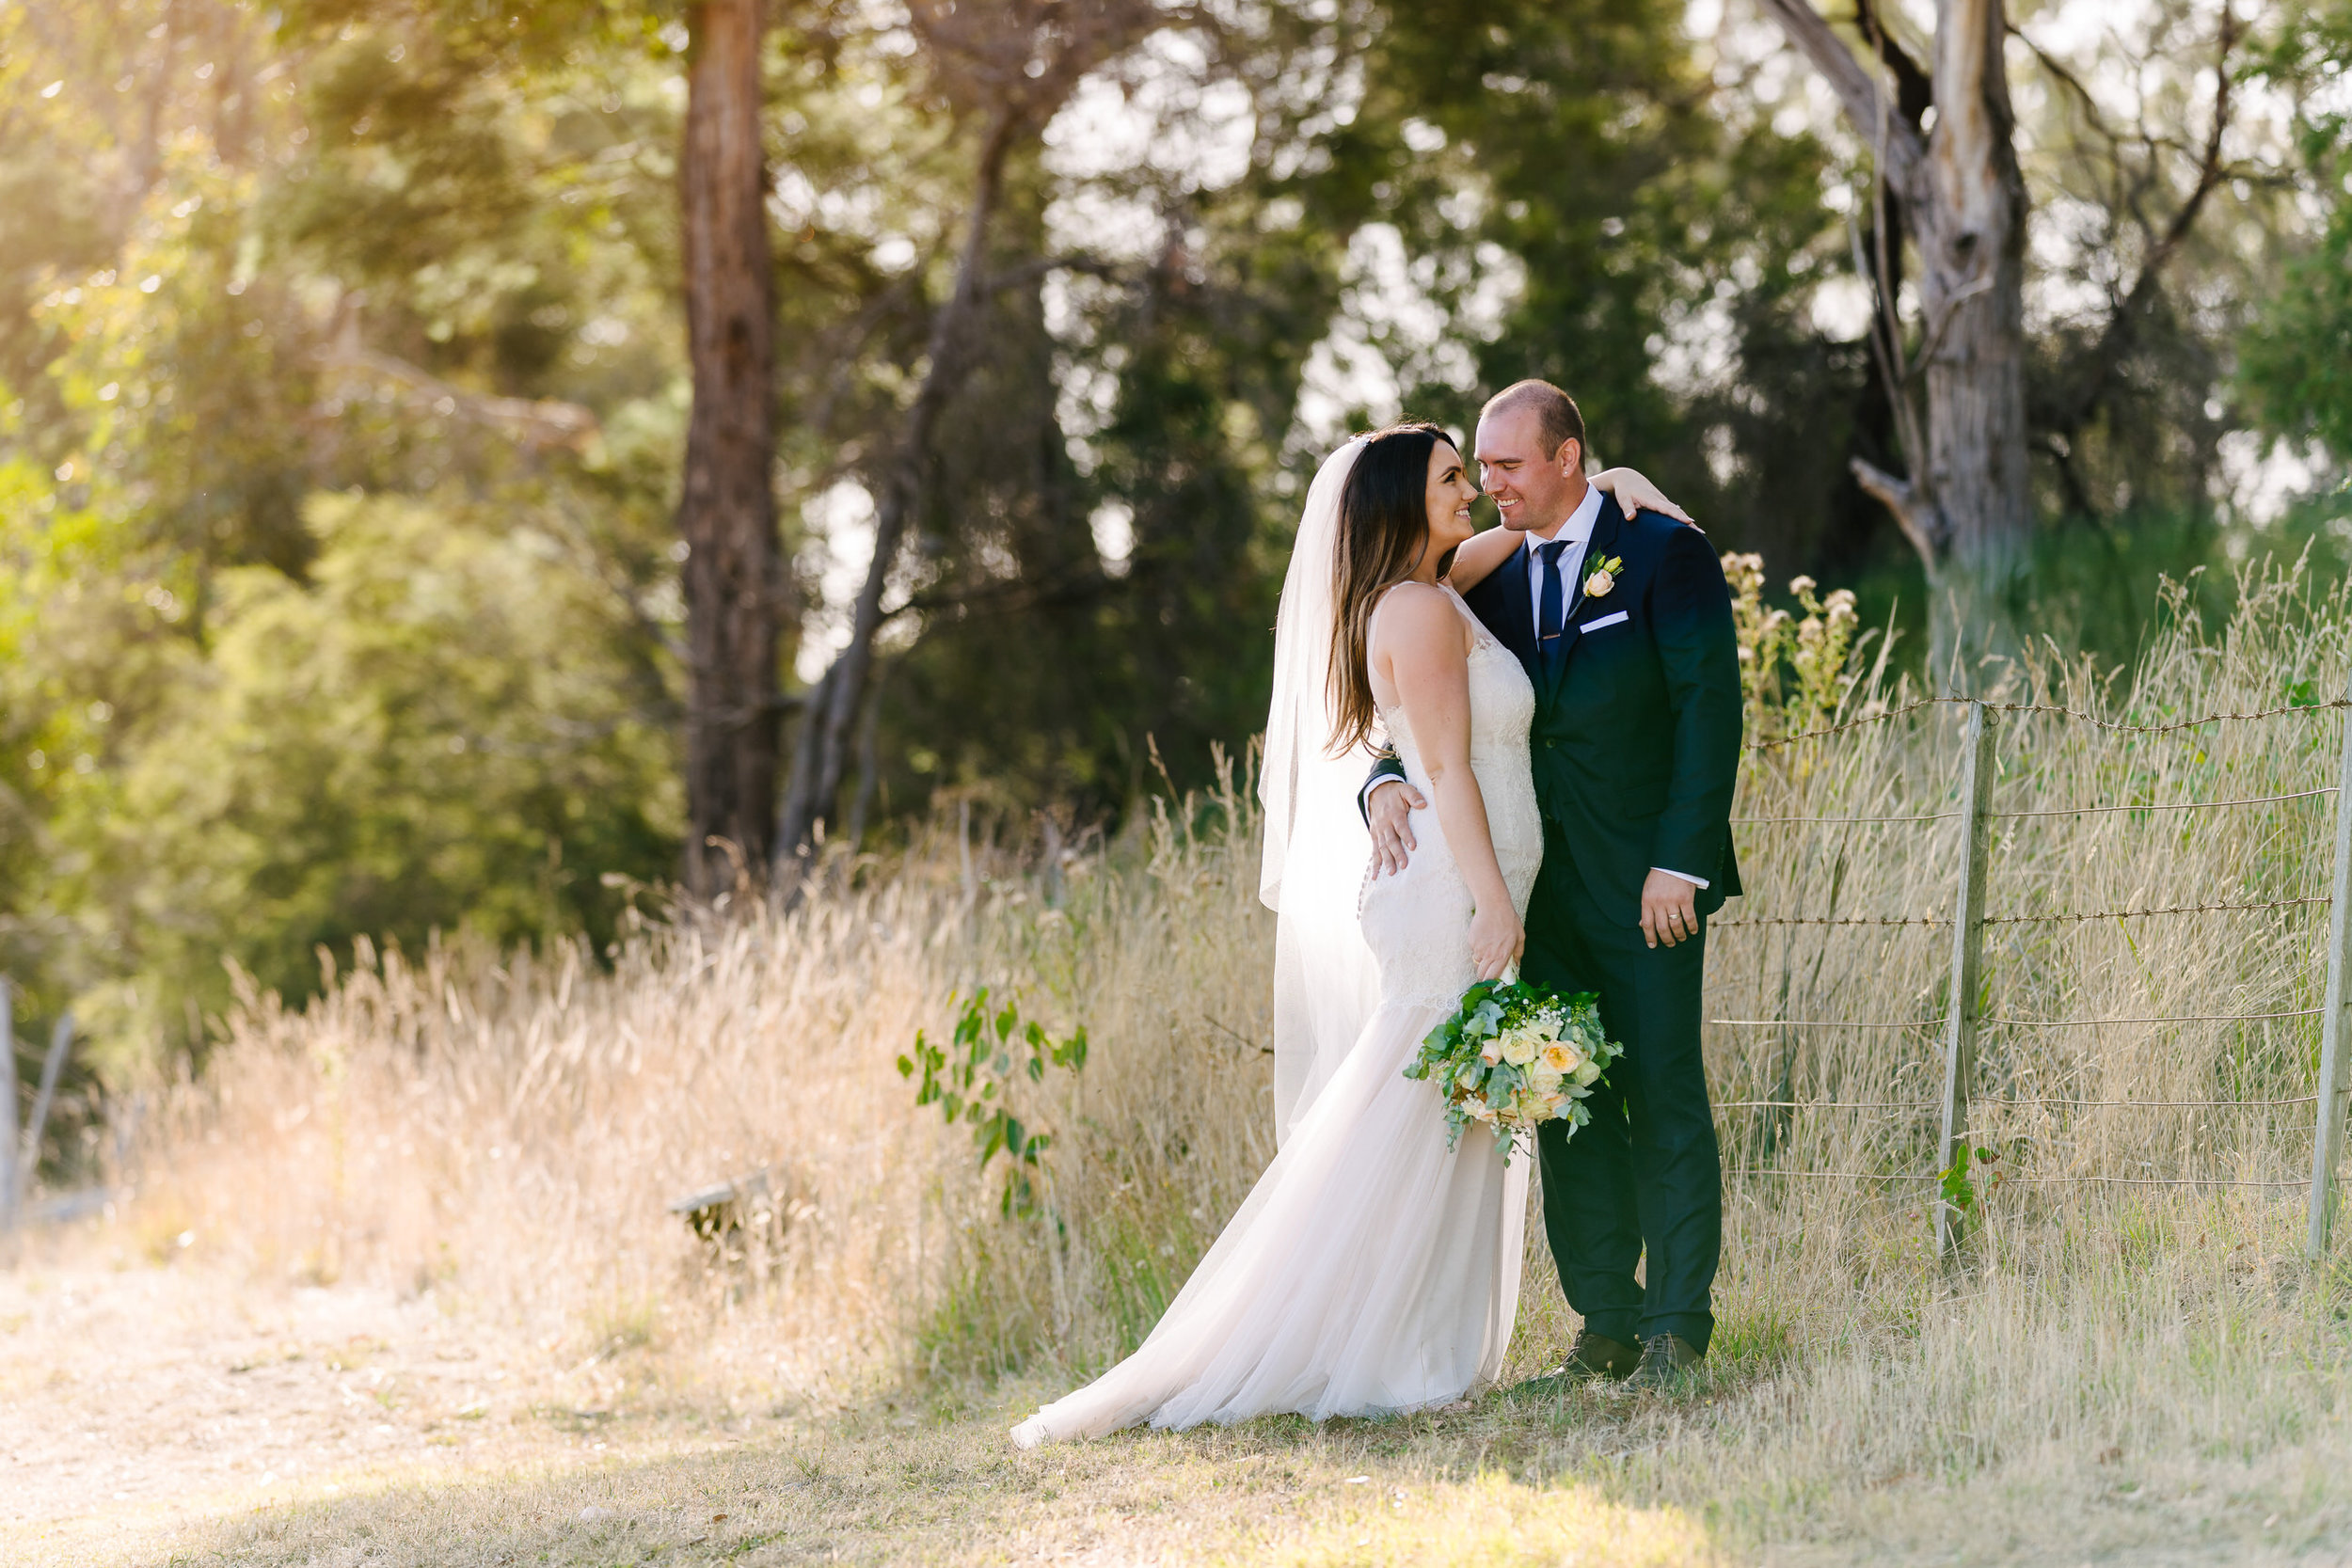 Justin_And_Jim_Photography_Balgownie_Winery_Wedding49.JPG